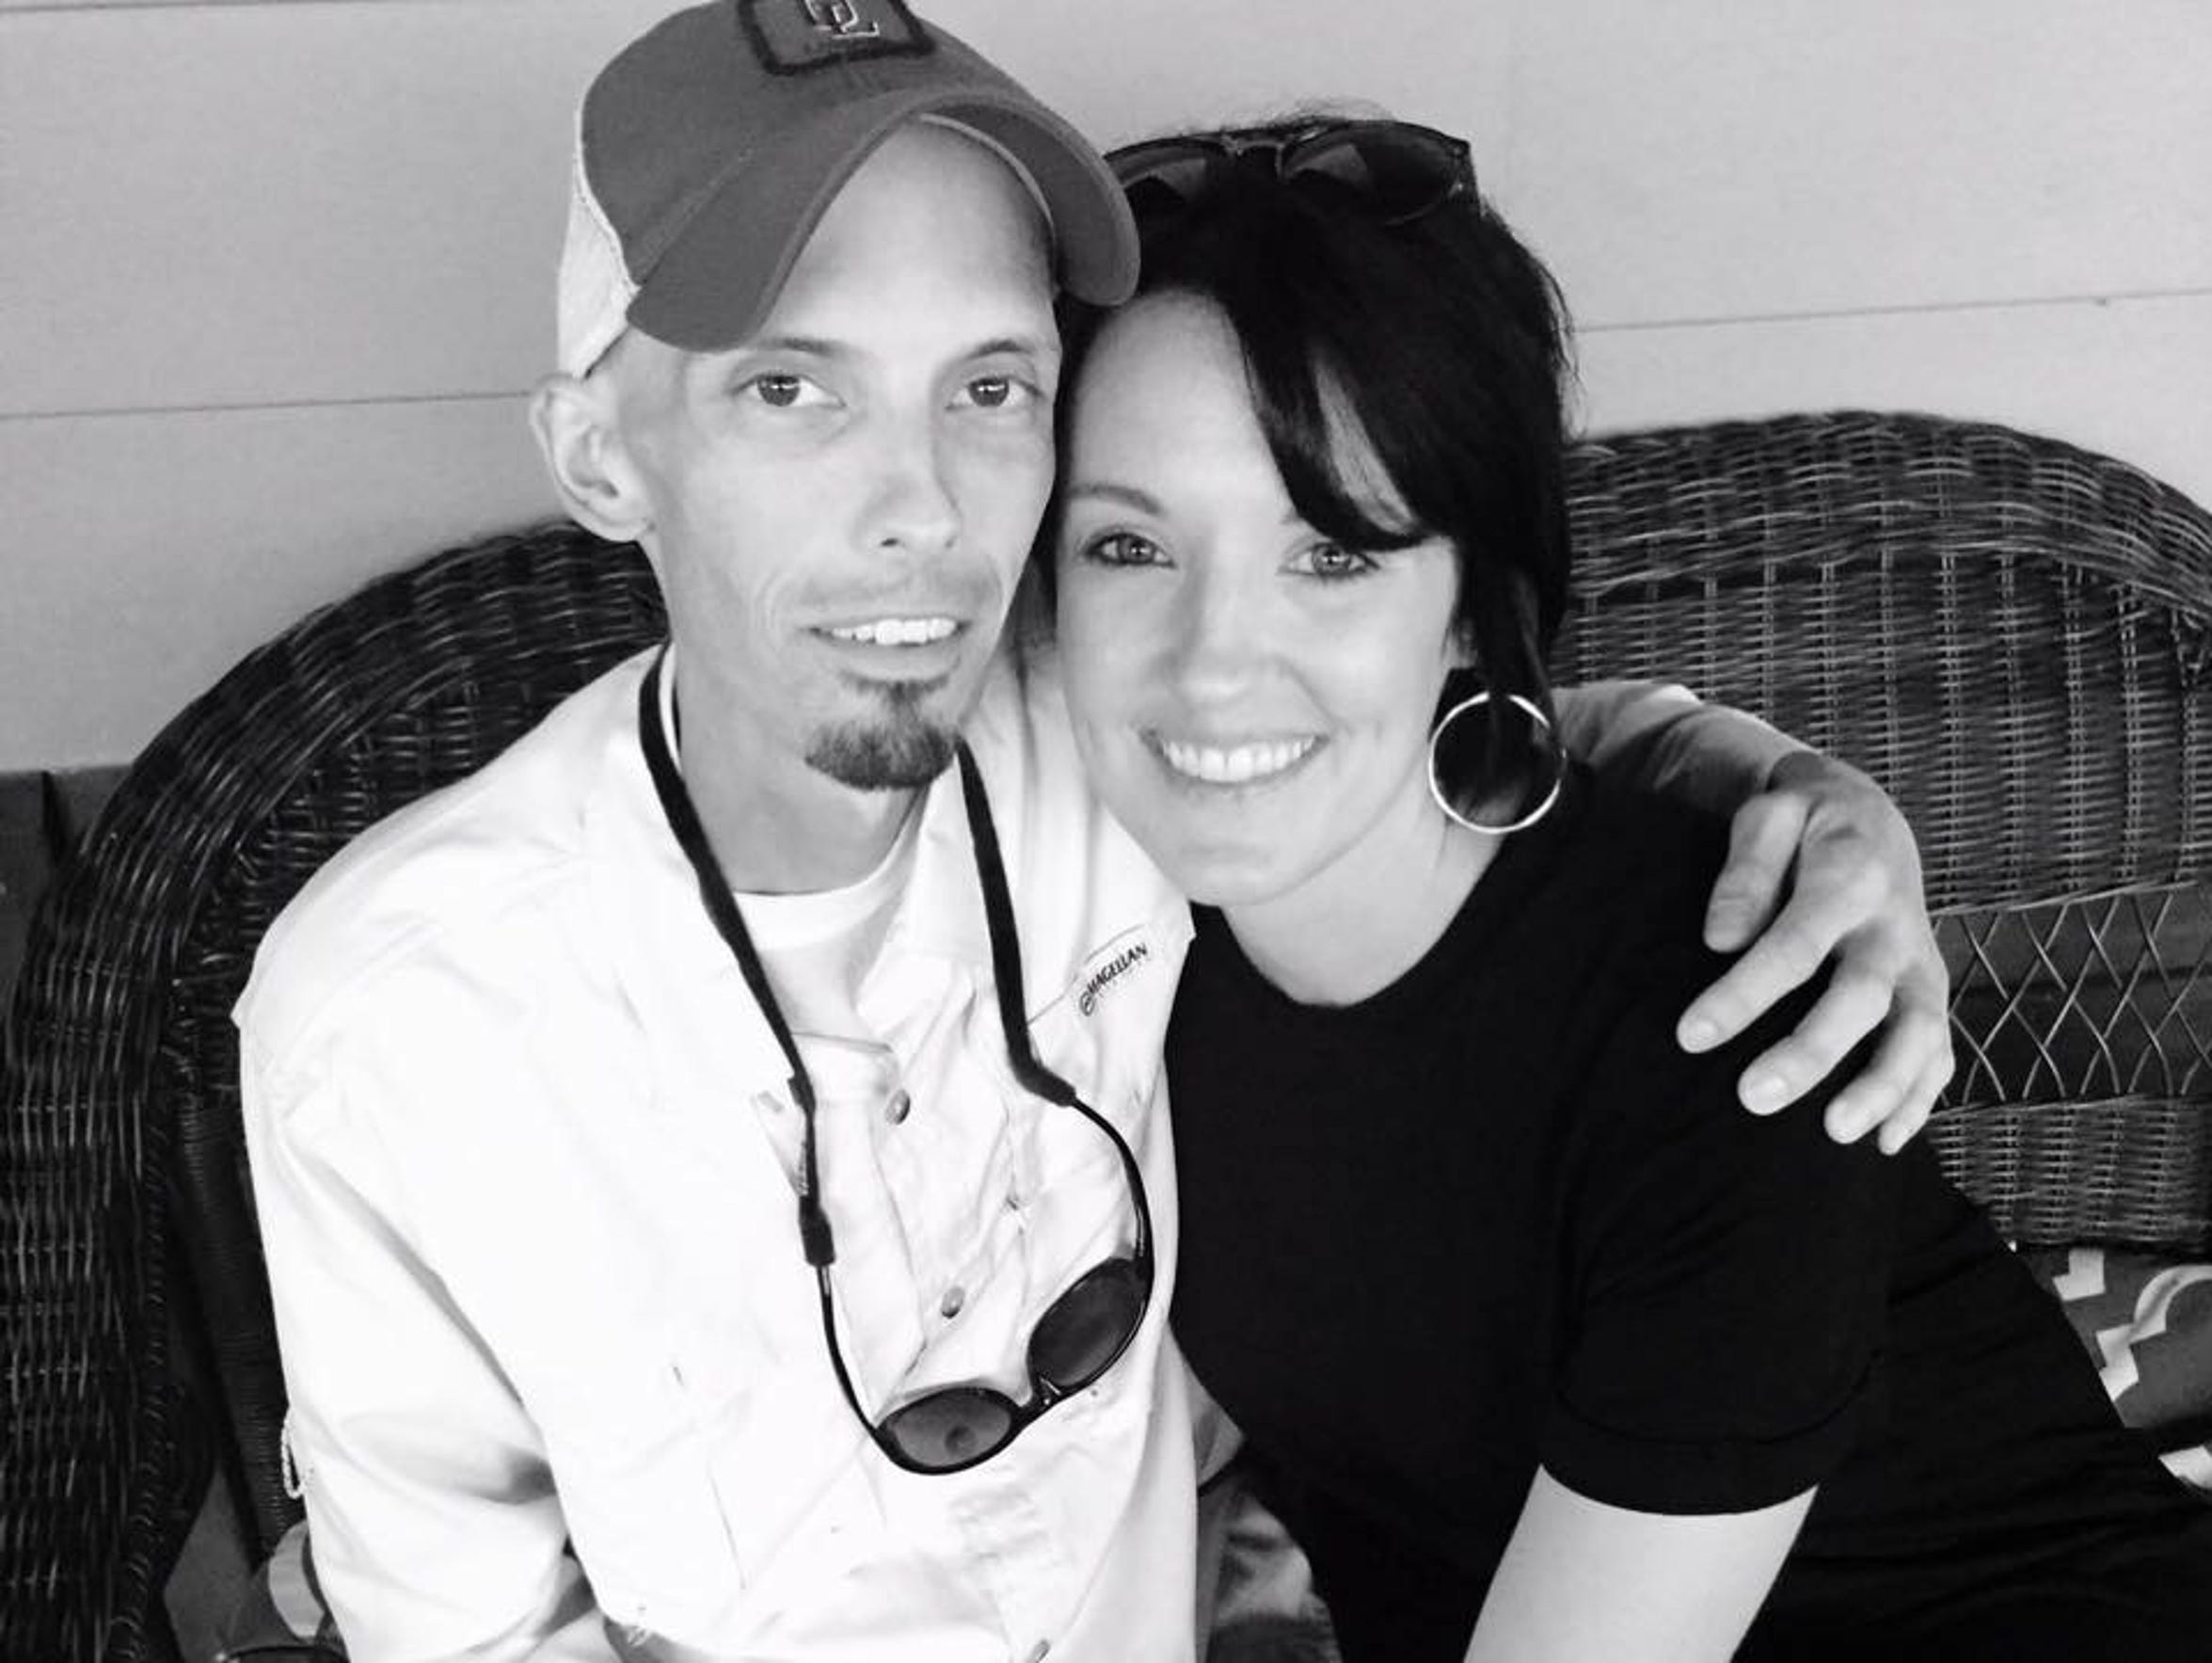 Kyle and Erin's love transcends cancer.